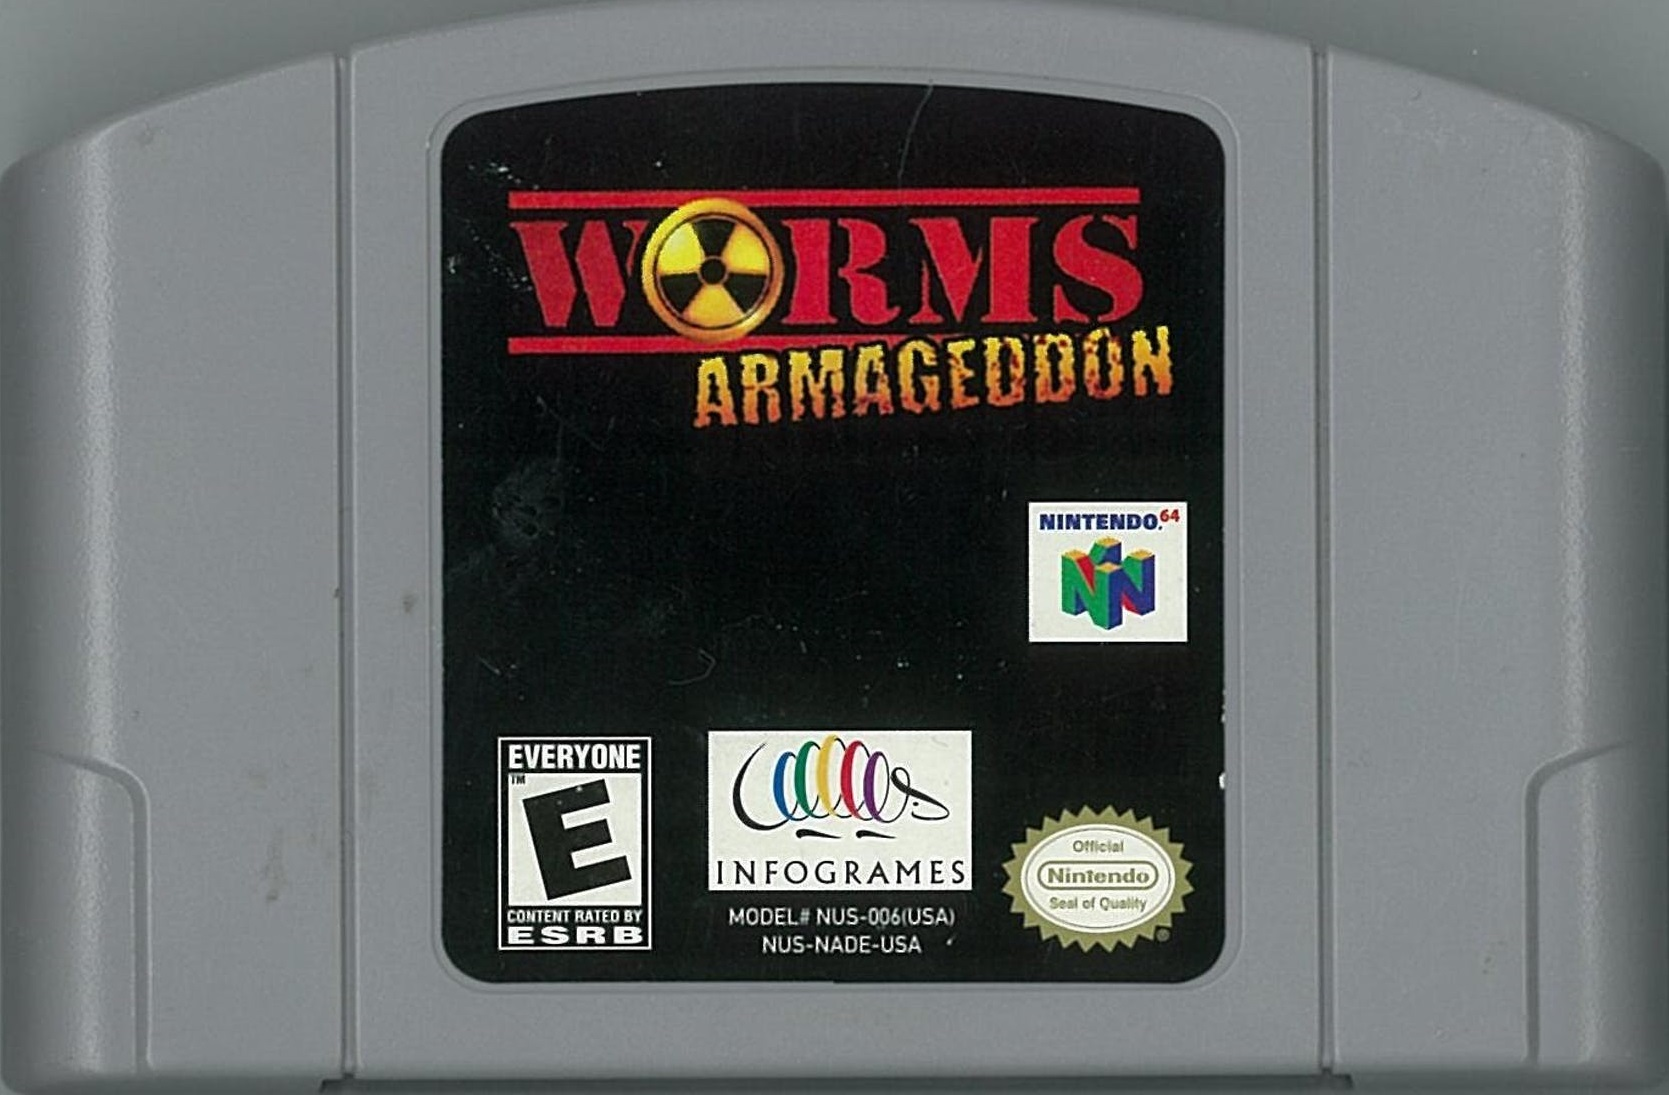 worms_arm.jpg